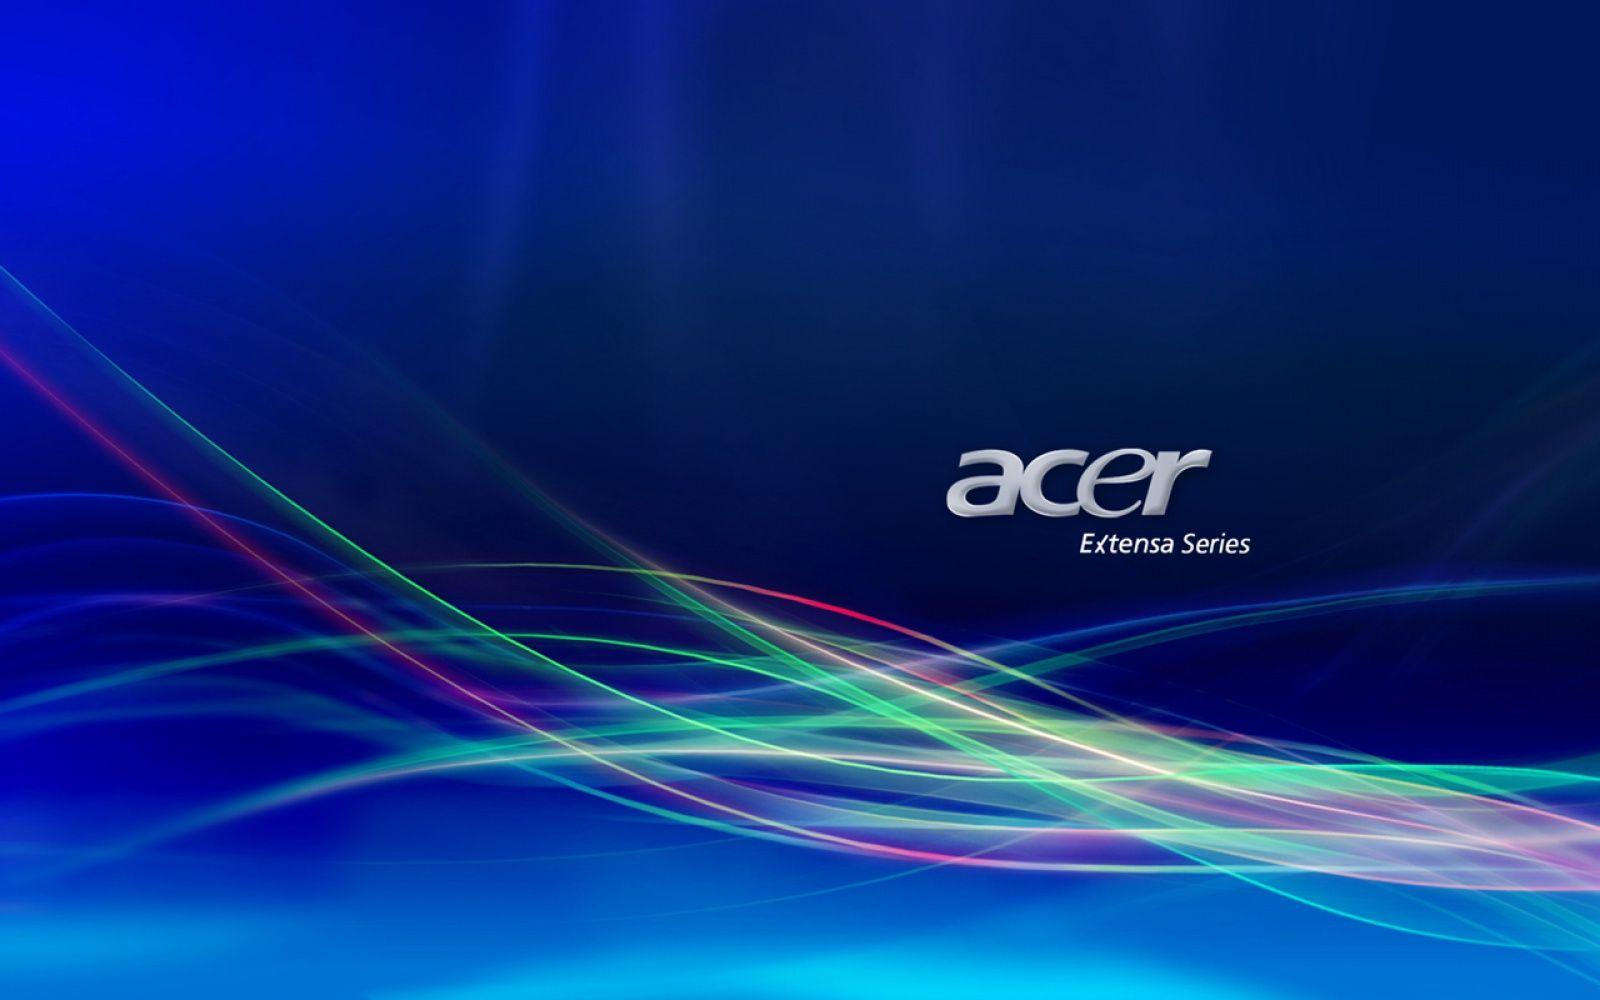 Top 10 Stunning Acer Desktop Wallpapers